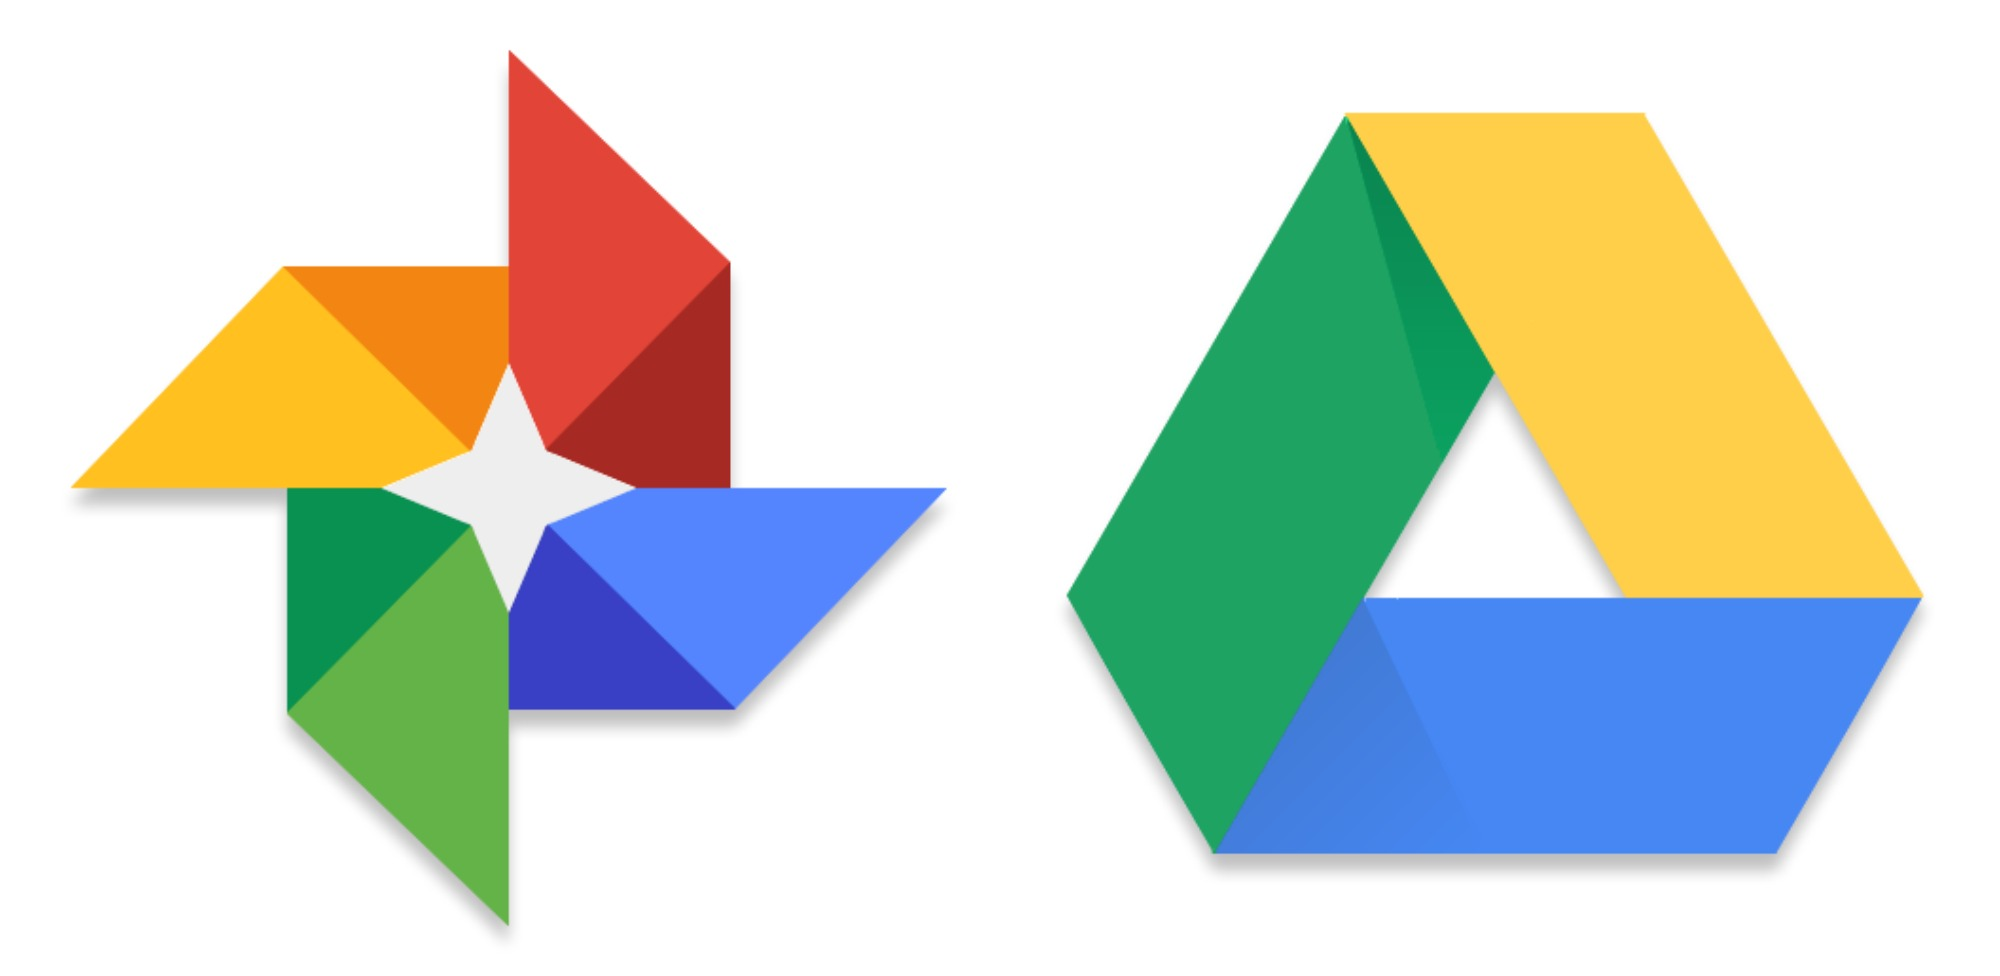 📷 Logotipo do Google Fotos / Drive | Phandroid